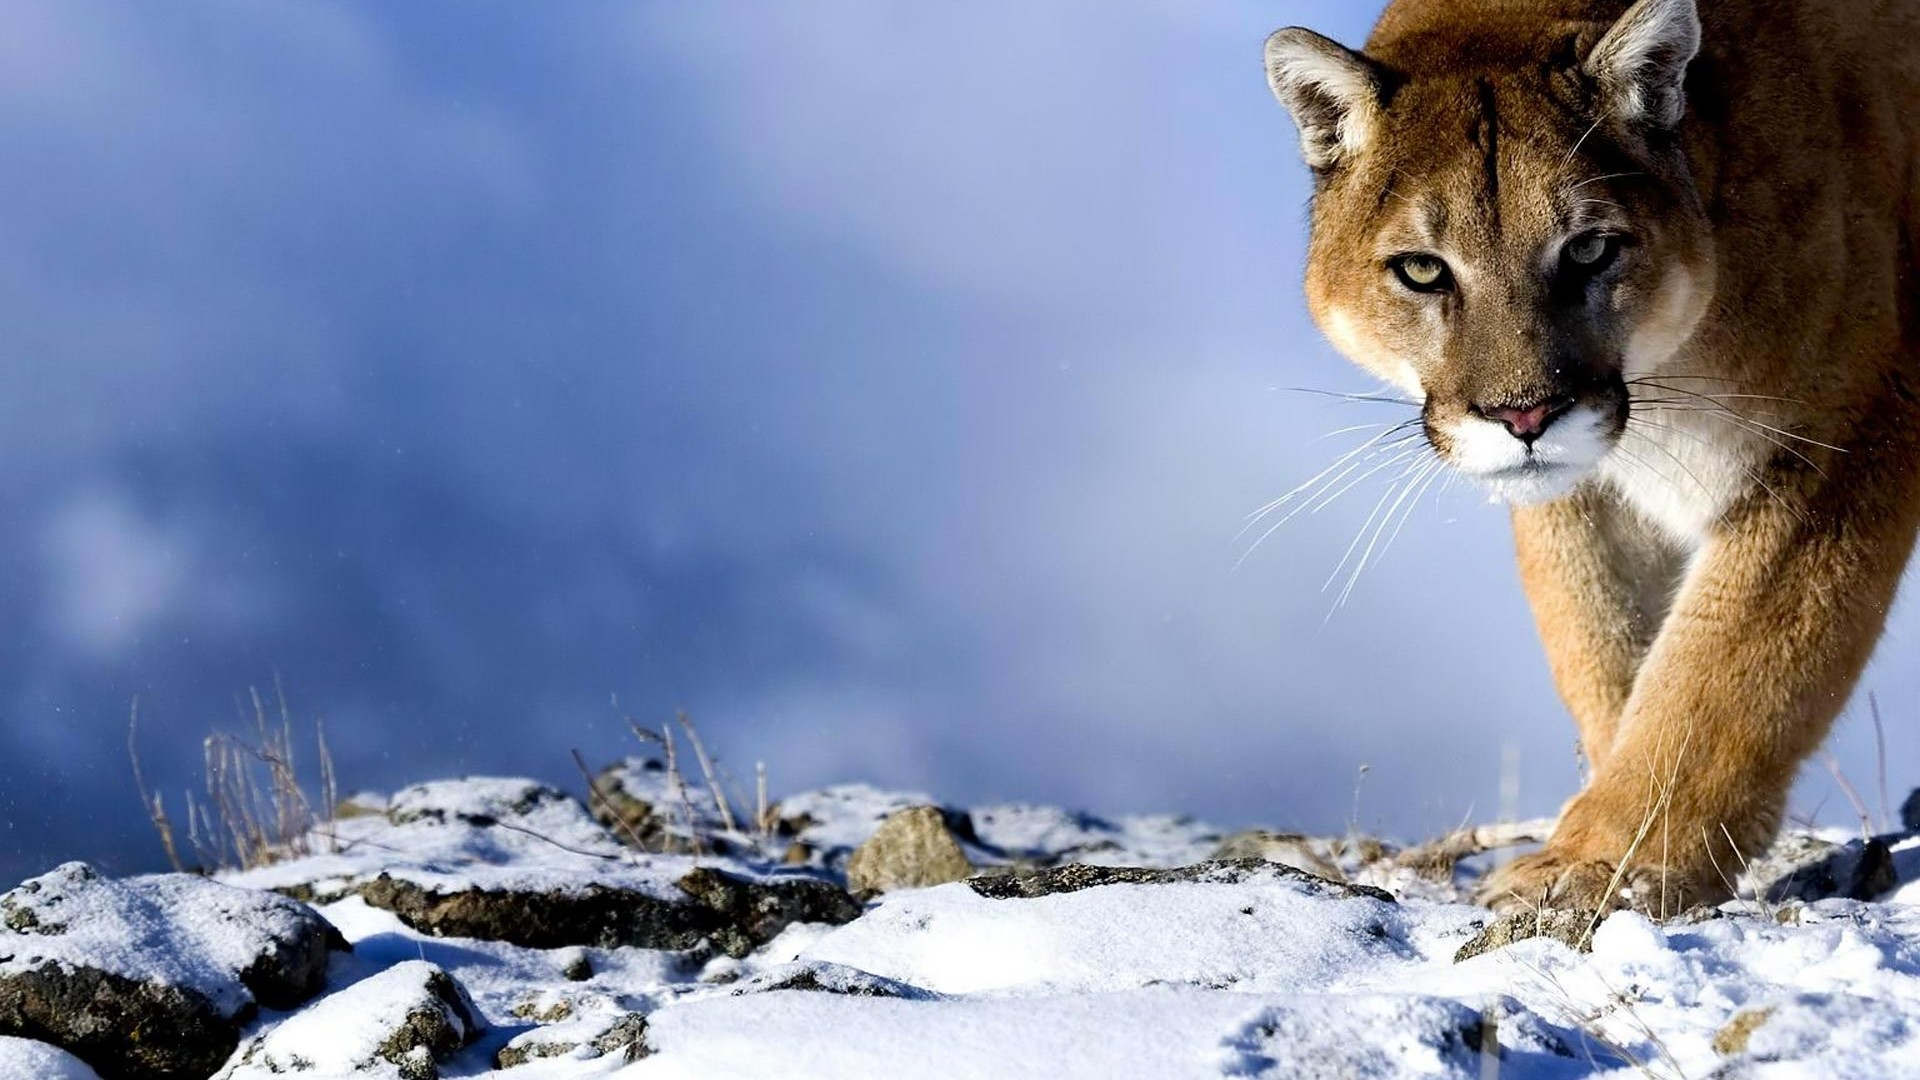 Free Download HD animal Wallpapers,HD animals Images